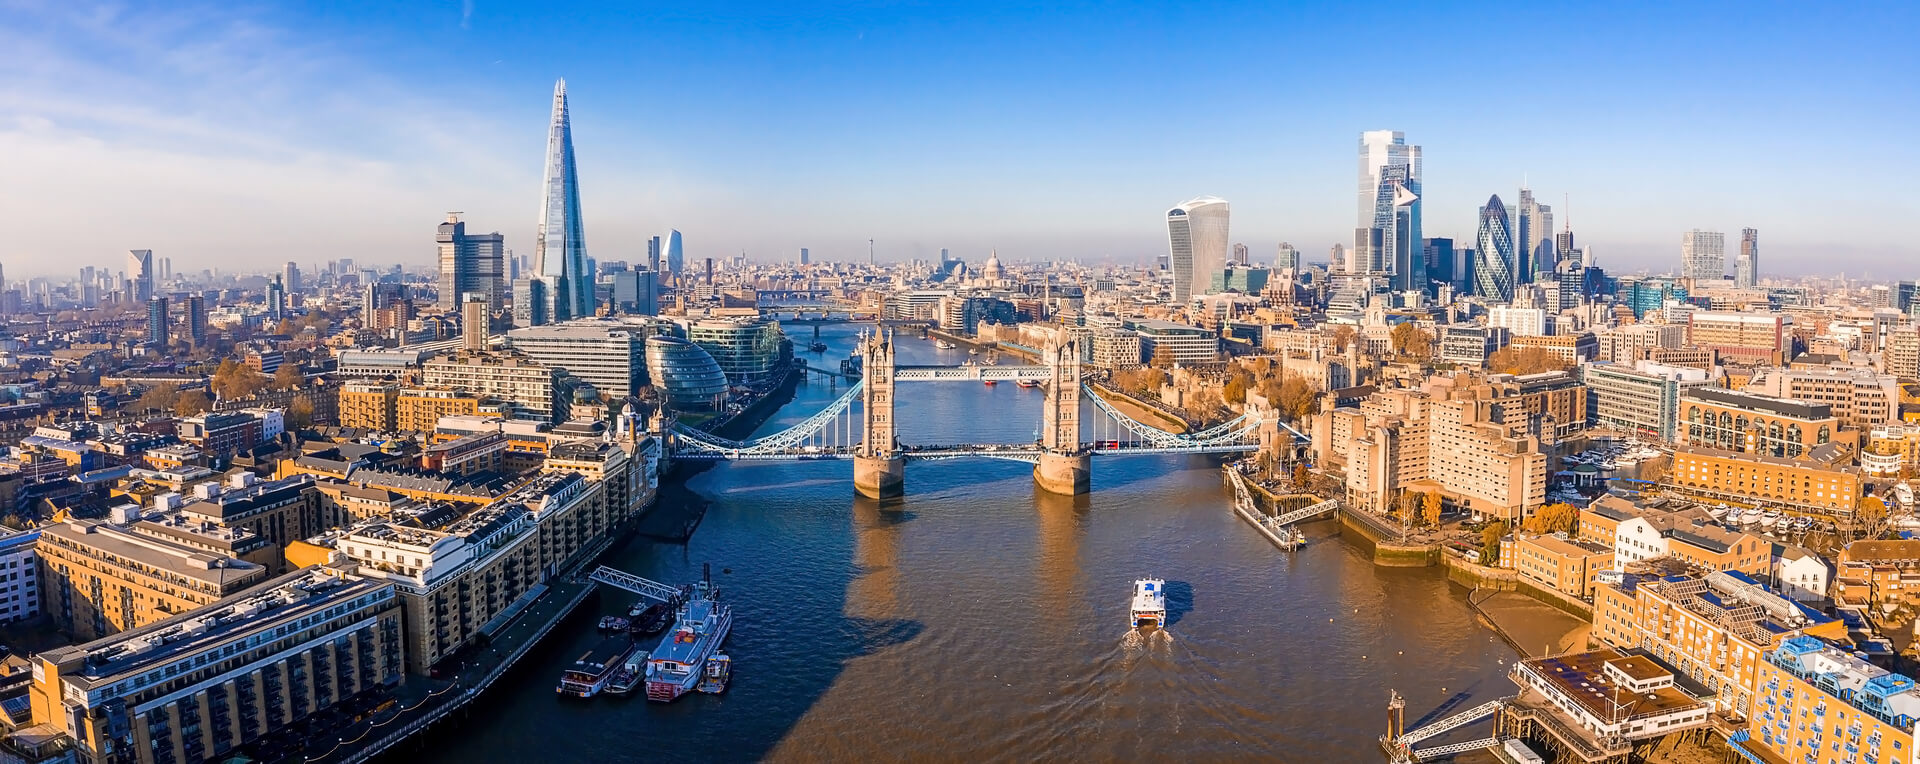 Aerial view of the Tower Bridge in London. One of London's most famous bridges and must-see landmarks in London. Beautiful panorama of London Tower Bridge.